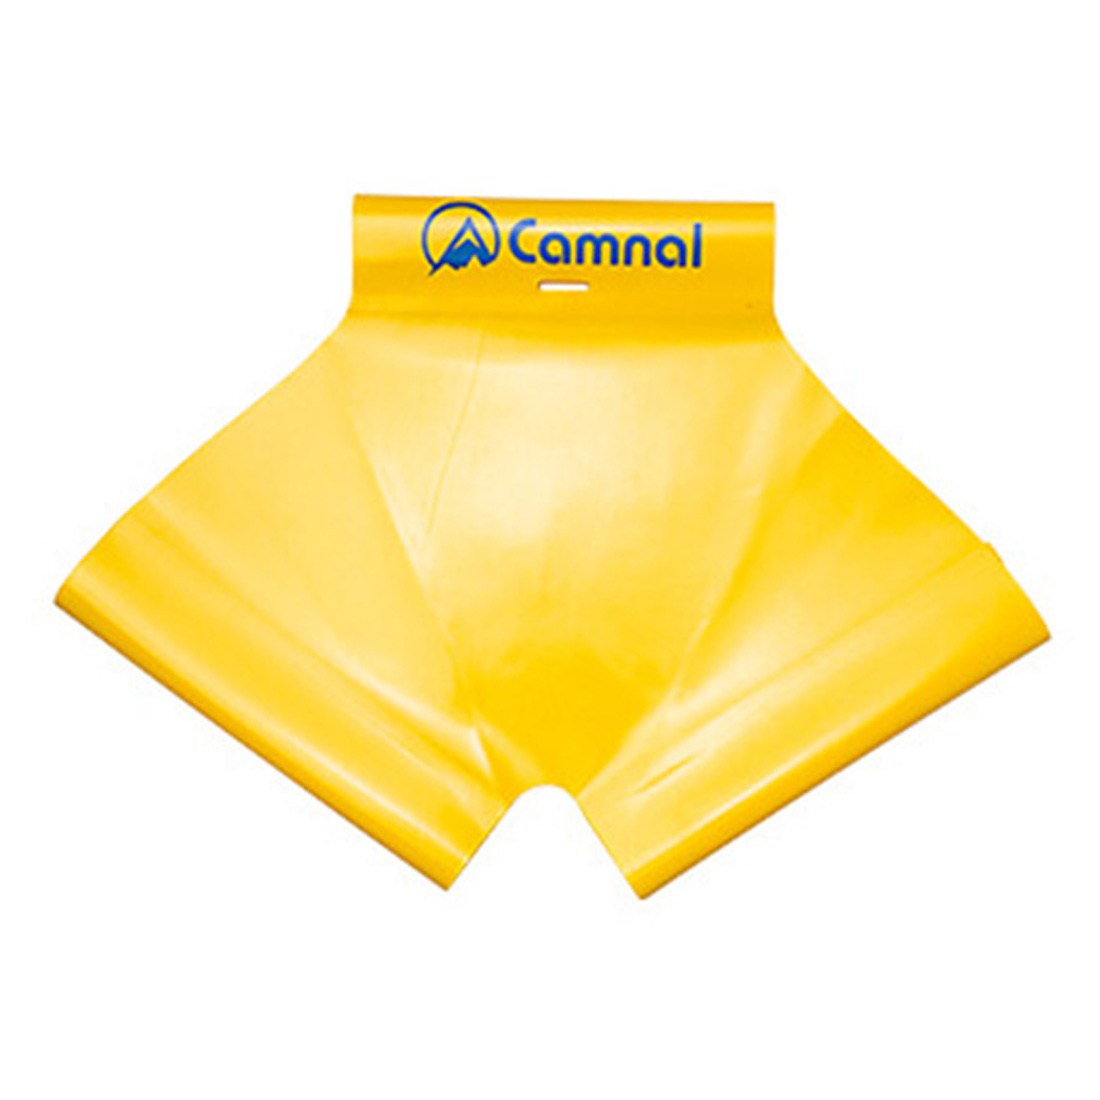 Covers Butt Seat Harness Wear-resisting Rescue Sports Swimming Jumping